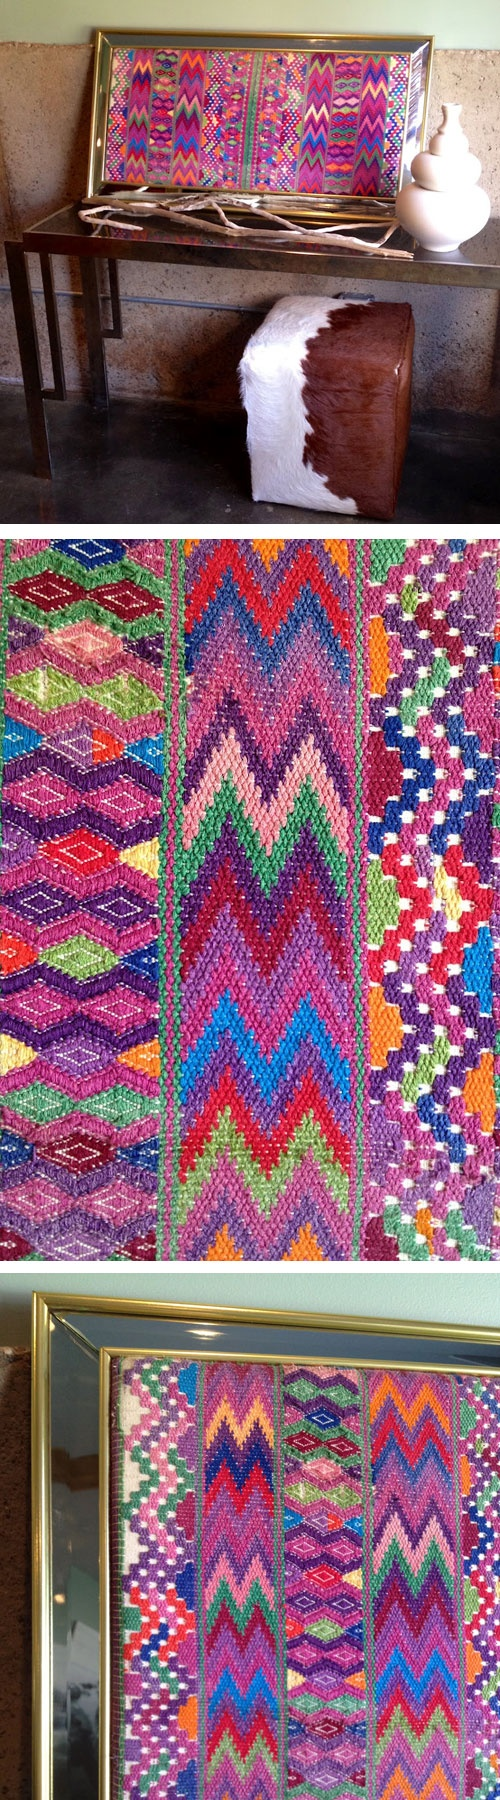 Framed Guatemalan textiles - I'd use a different frame for my decor but love this idea.